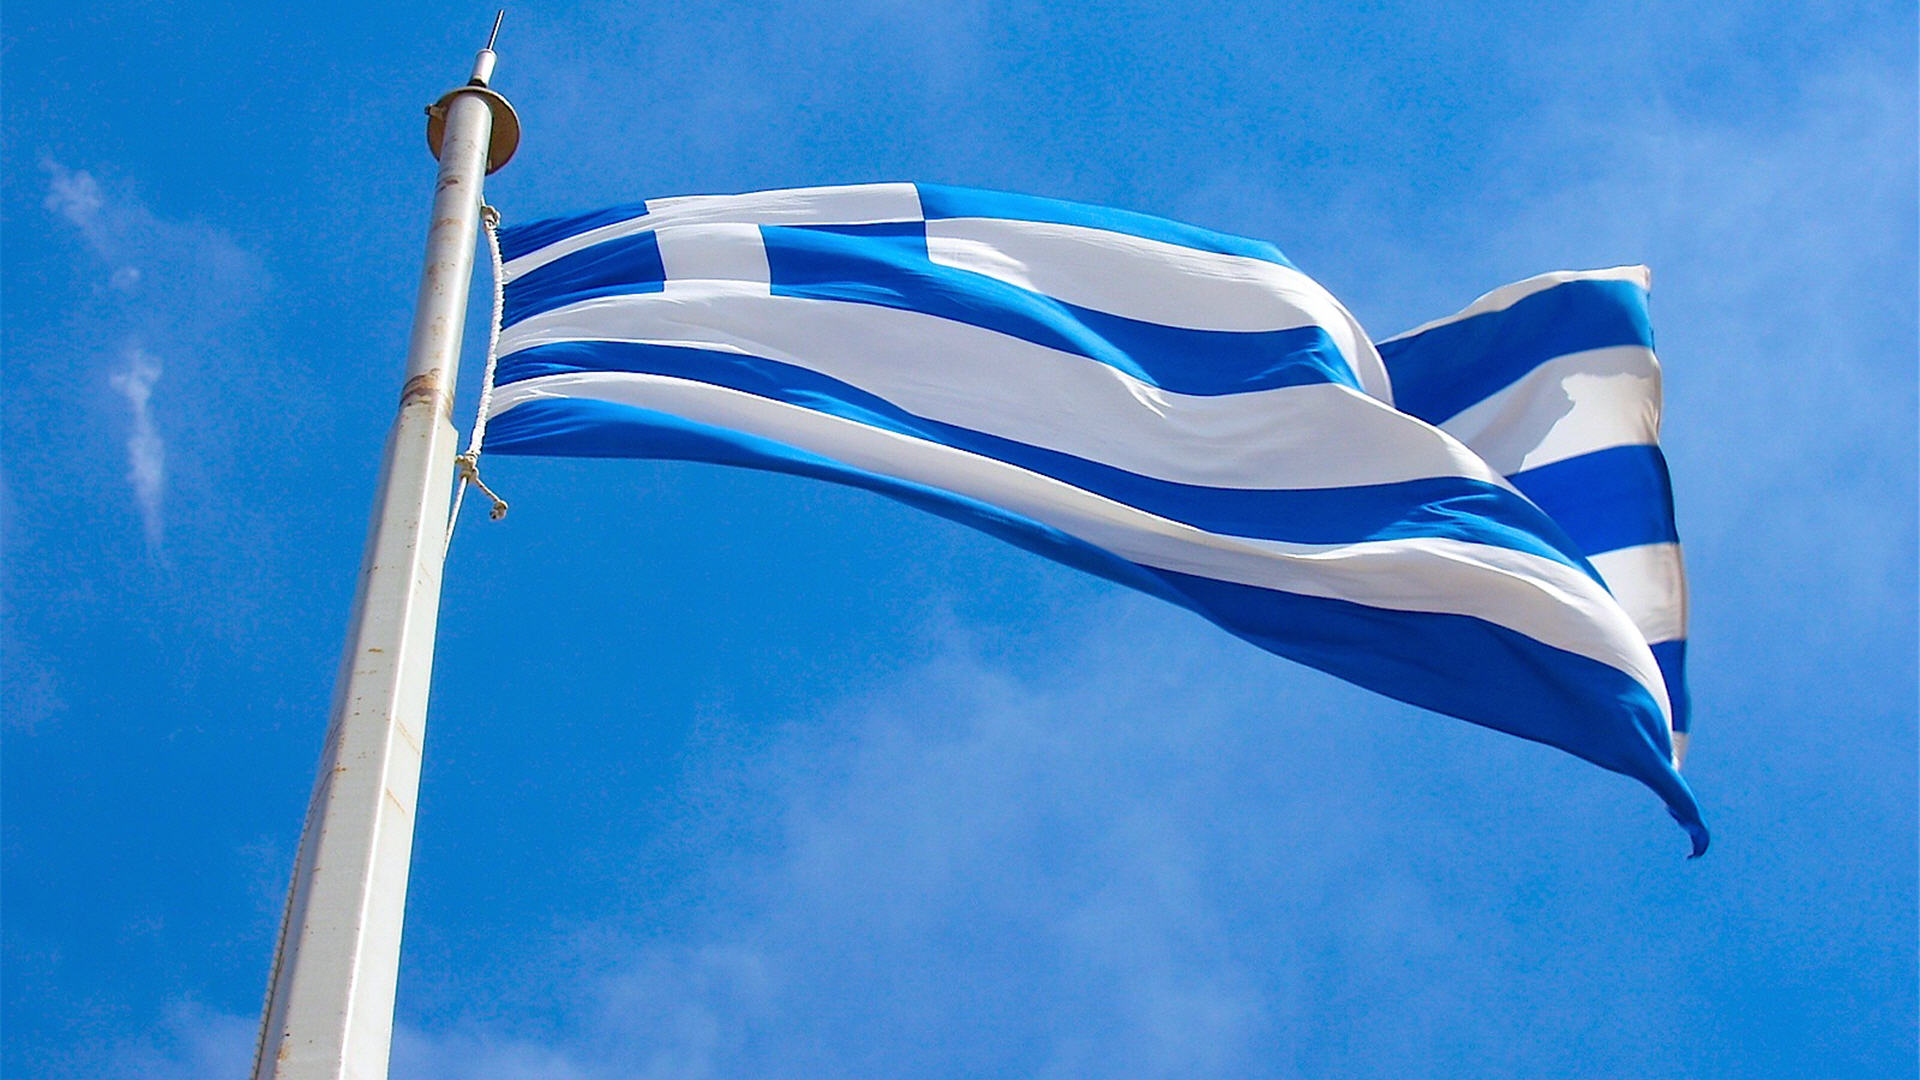 Greek Flag 1080p Wallpaper HD 1920x1080 6396 1920x1080